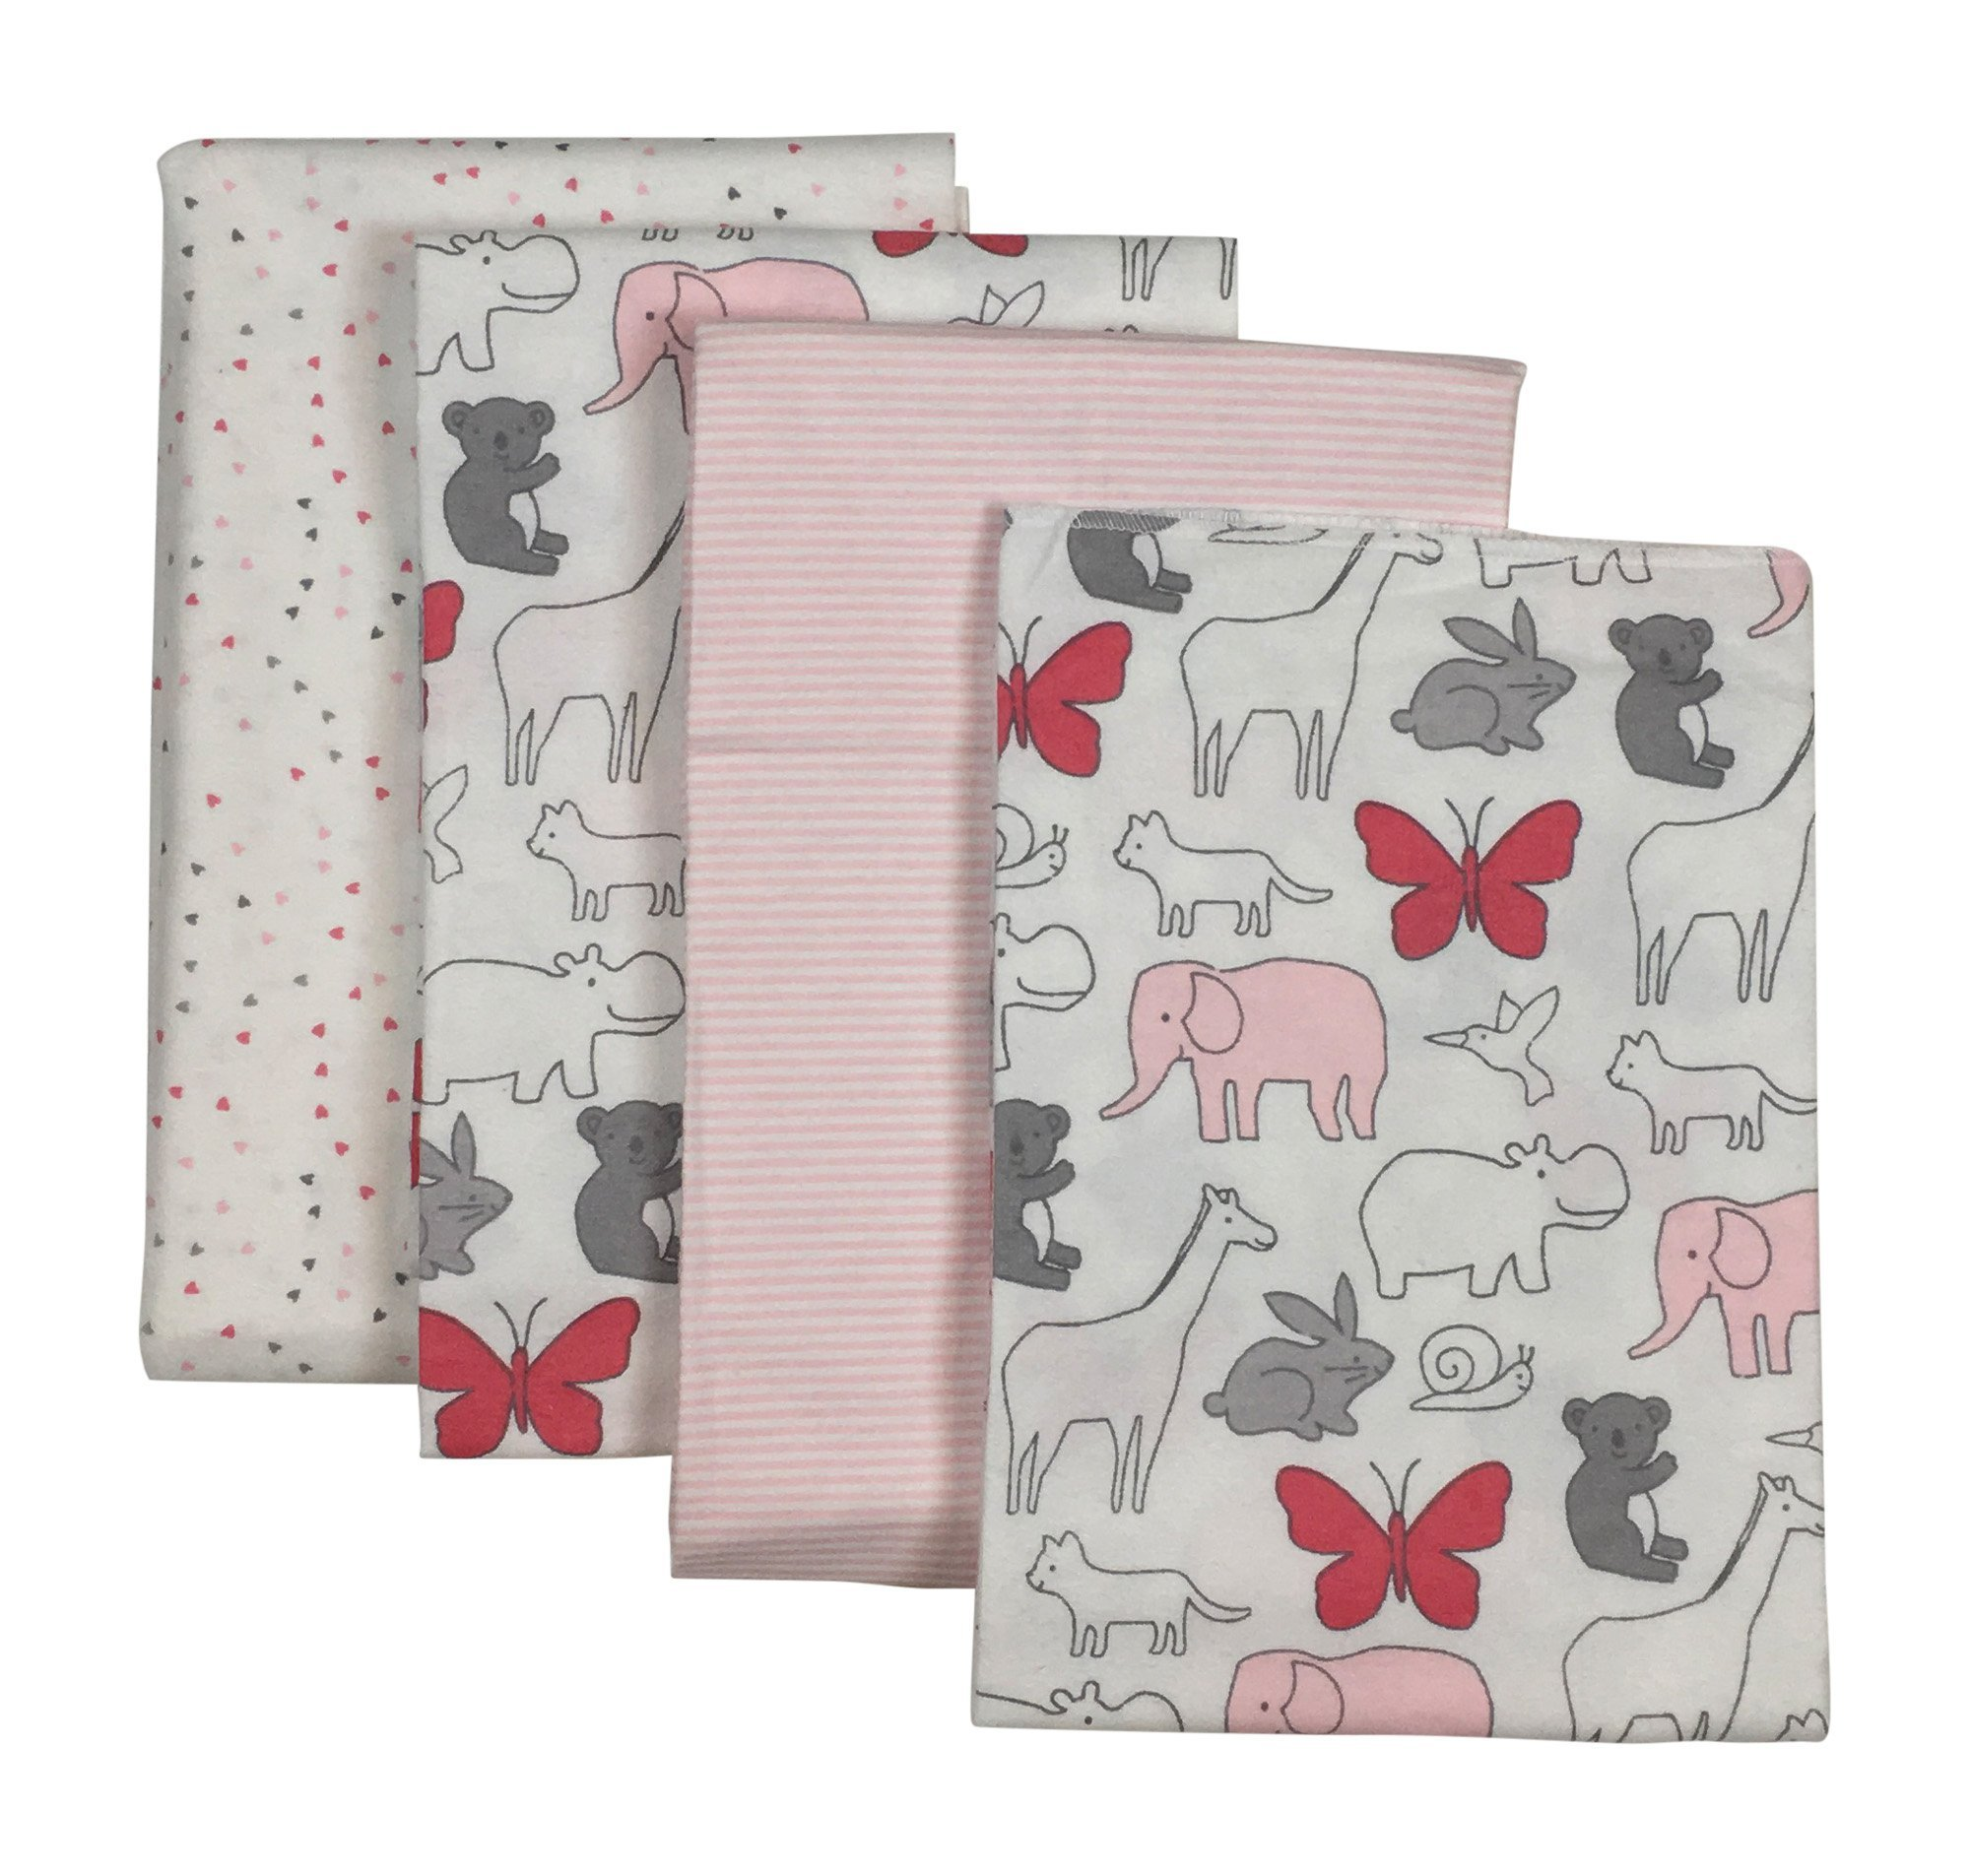 Carters 4-Pack Receiving Blanket Animals & Hearts Pink by Carter's